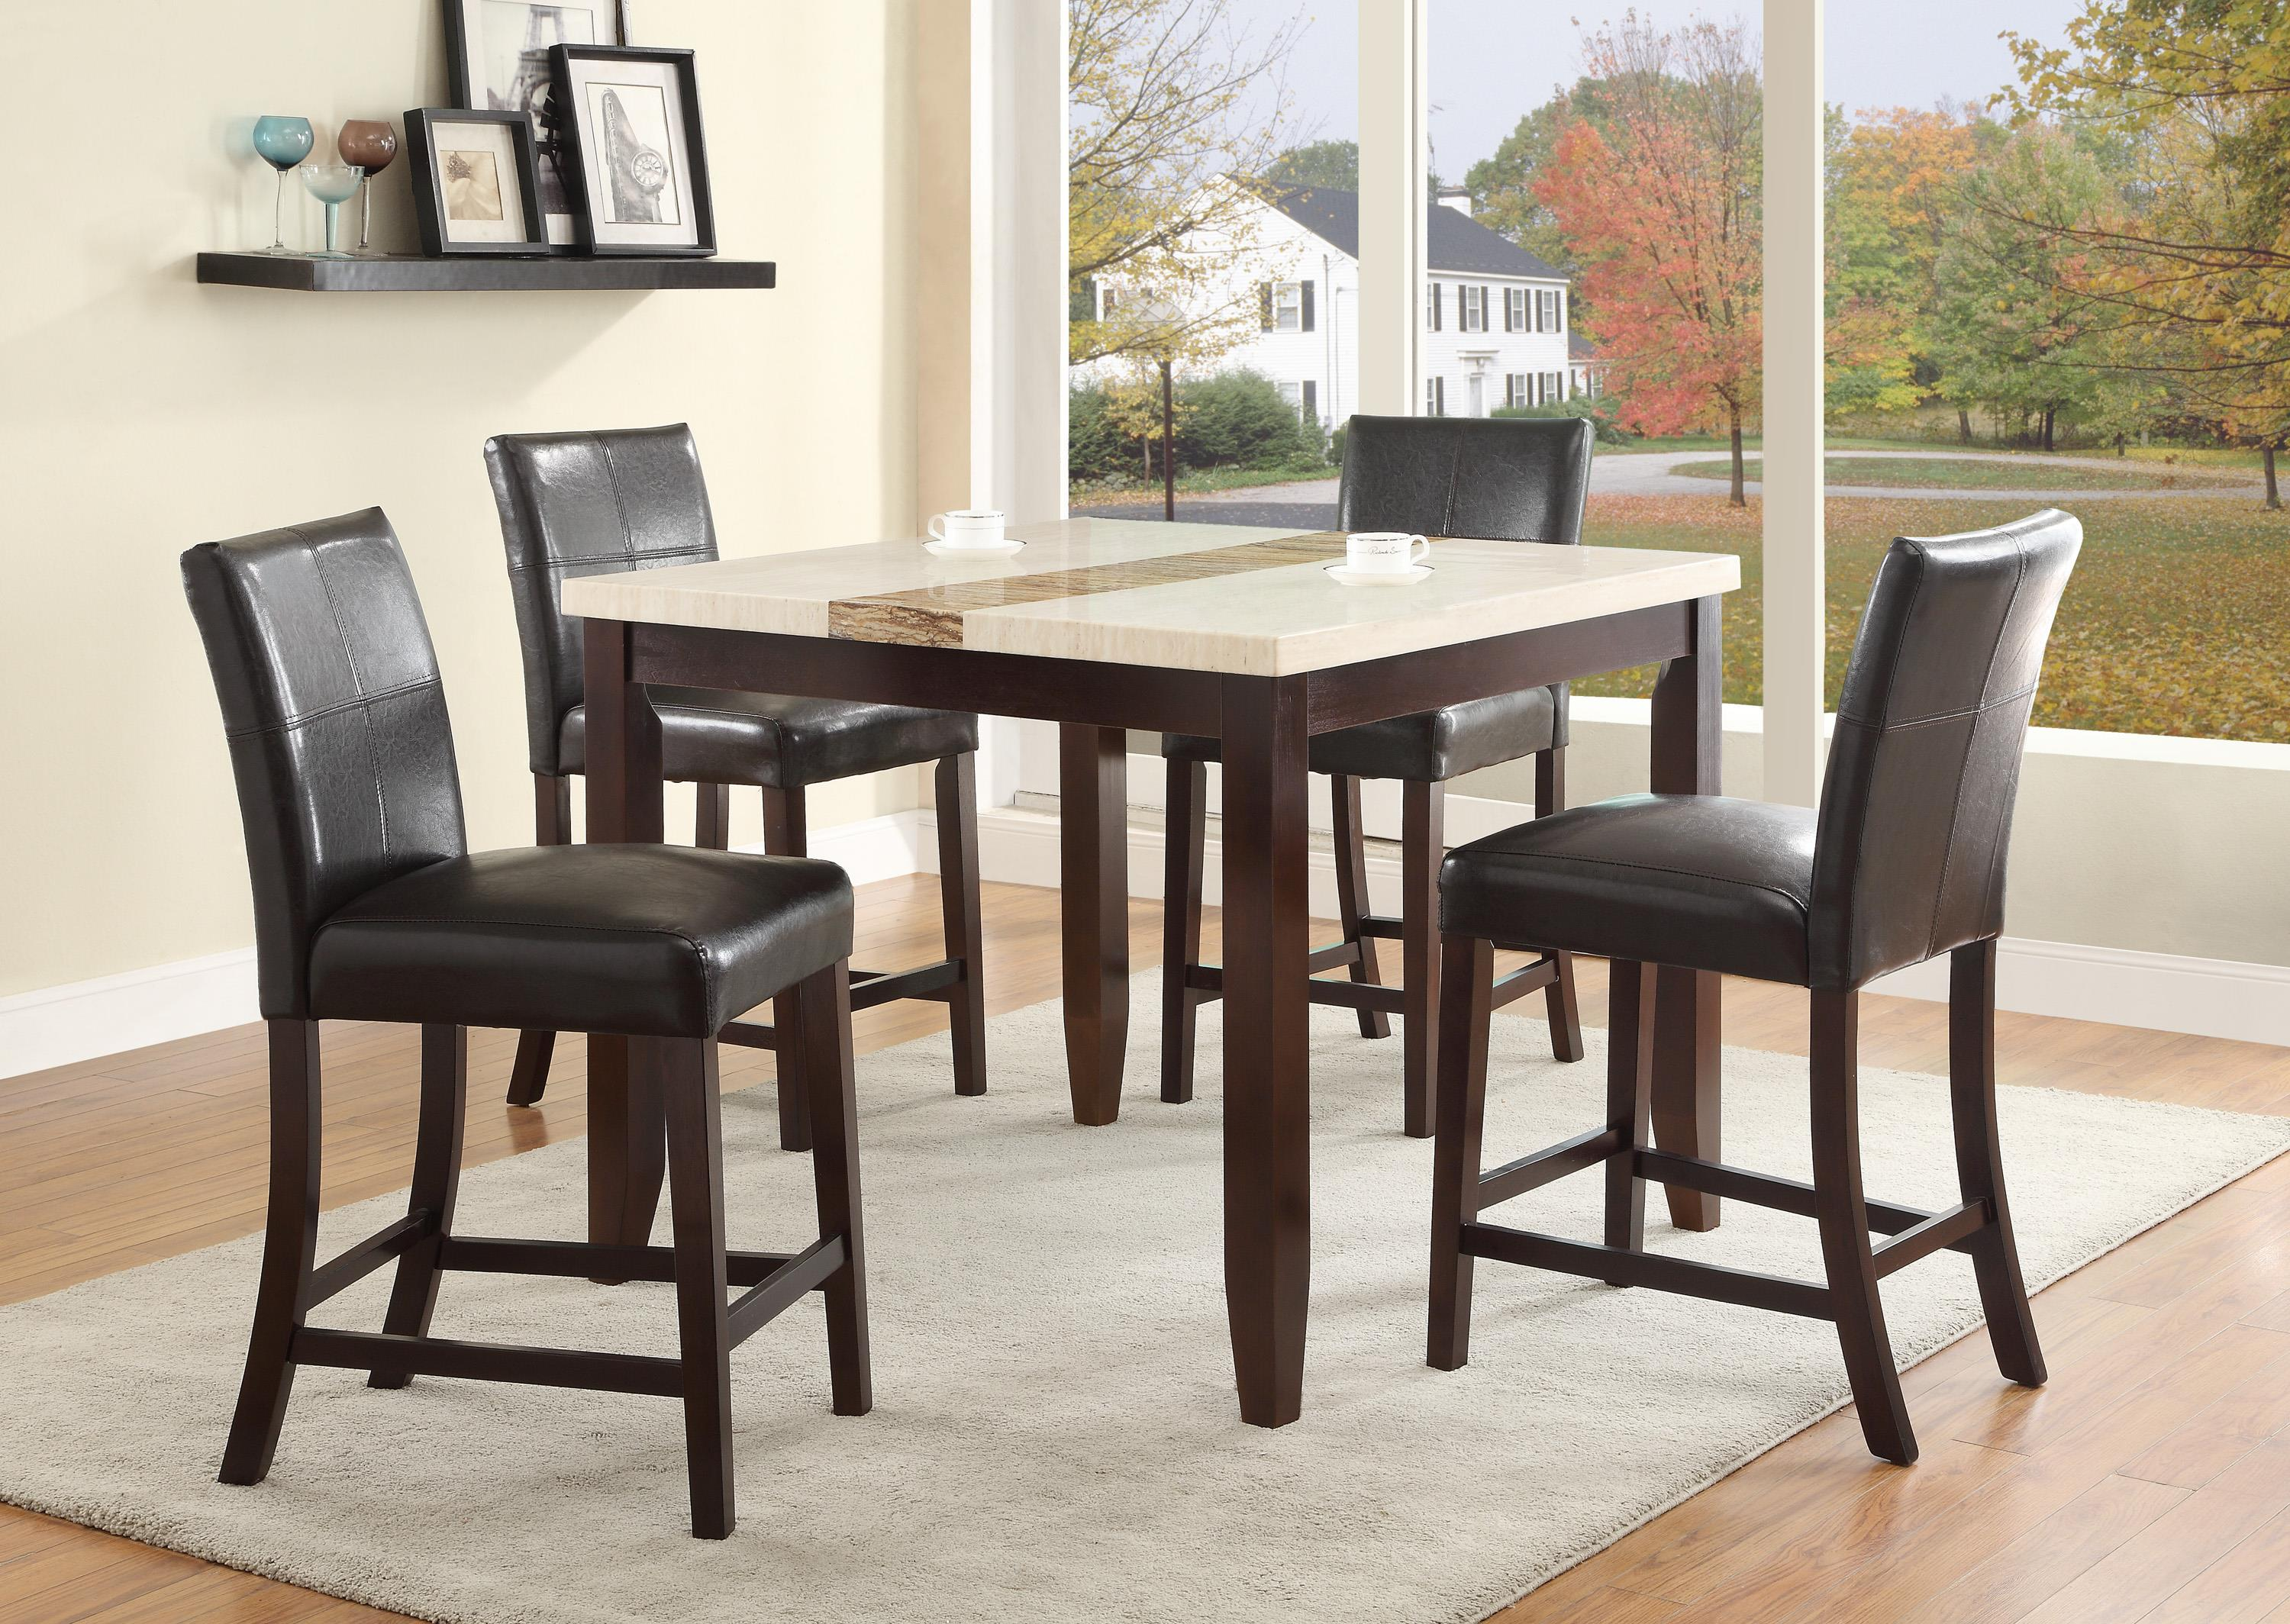 raymour and flanigan living room furniture sets ideas for rooms crown mark larissa 5 piece counter height table set with upholstered